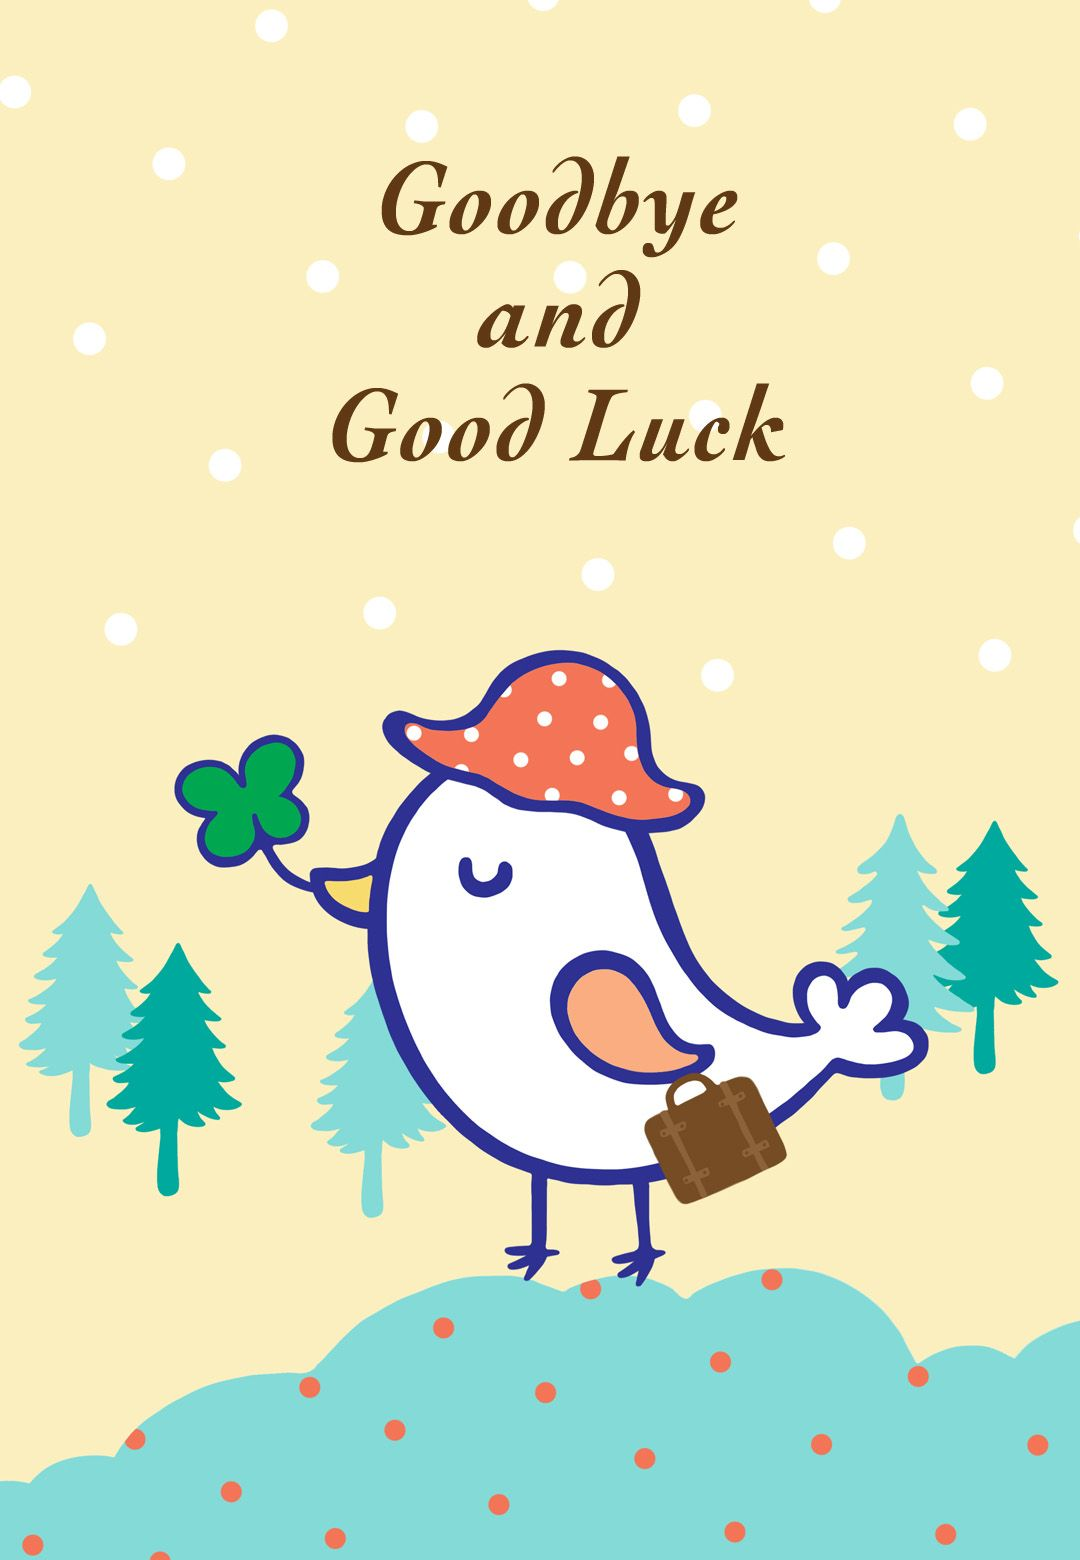 Free Farewell Card Template Free Printable Goodbye And Good Luck Greeting Card  Littlestar .